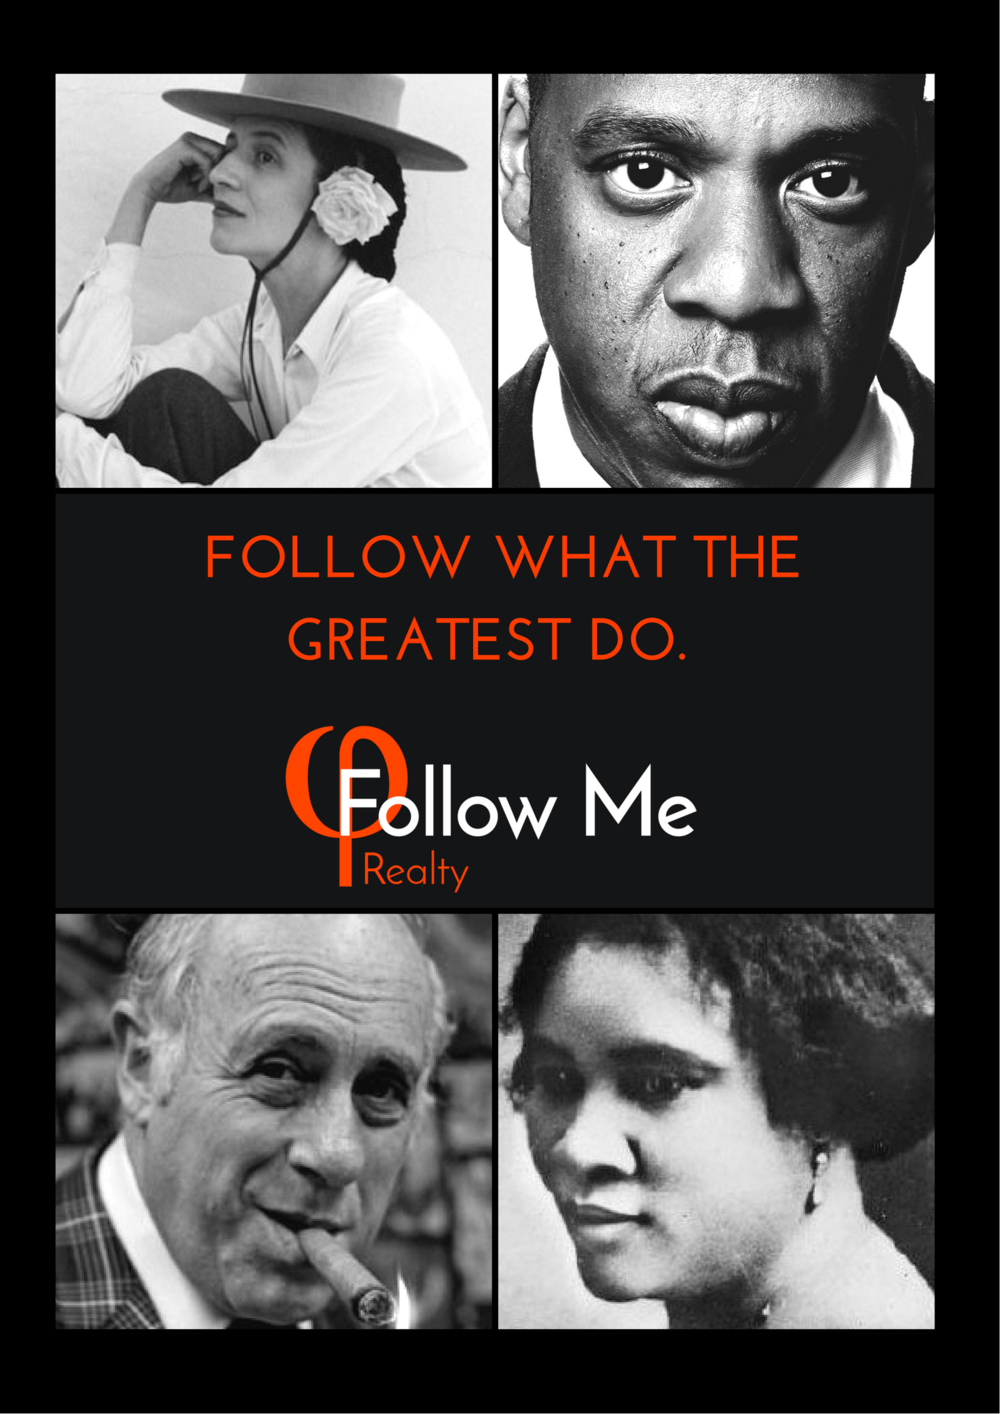 Follow what the greatest do